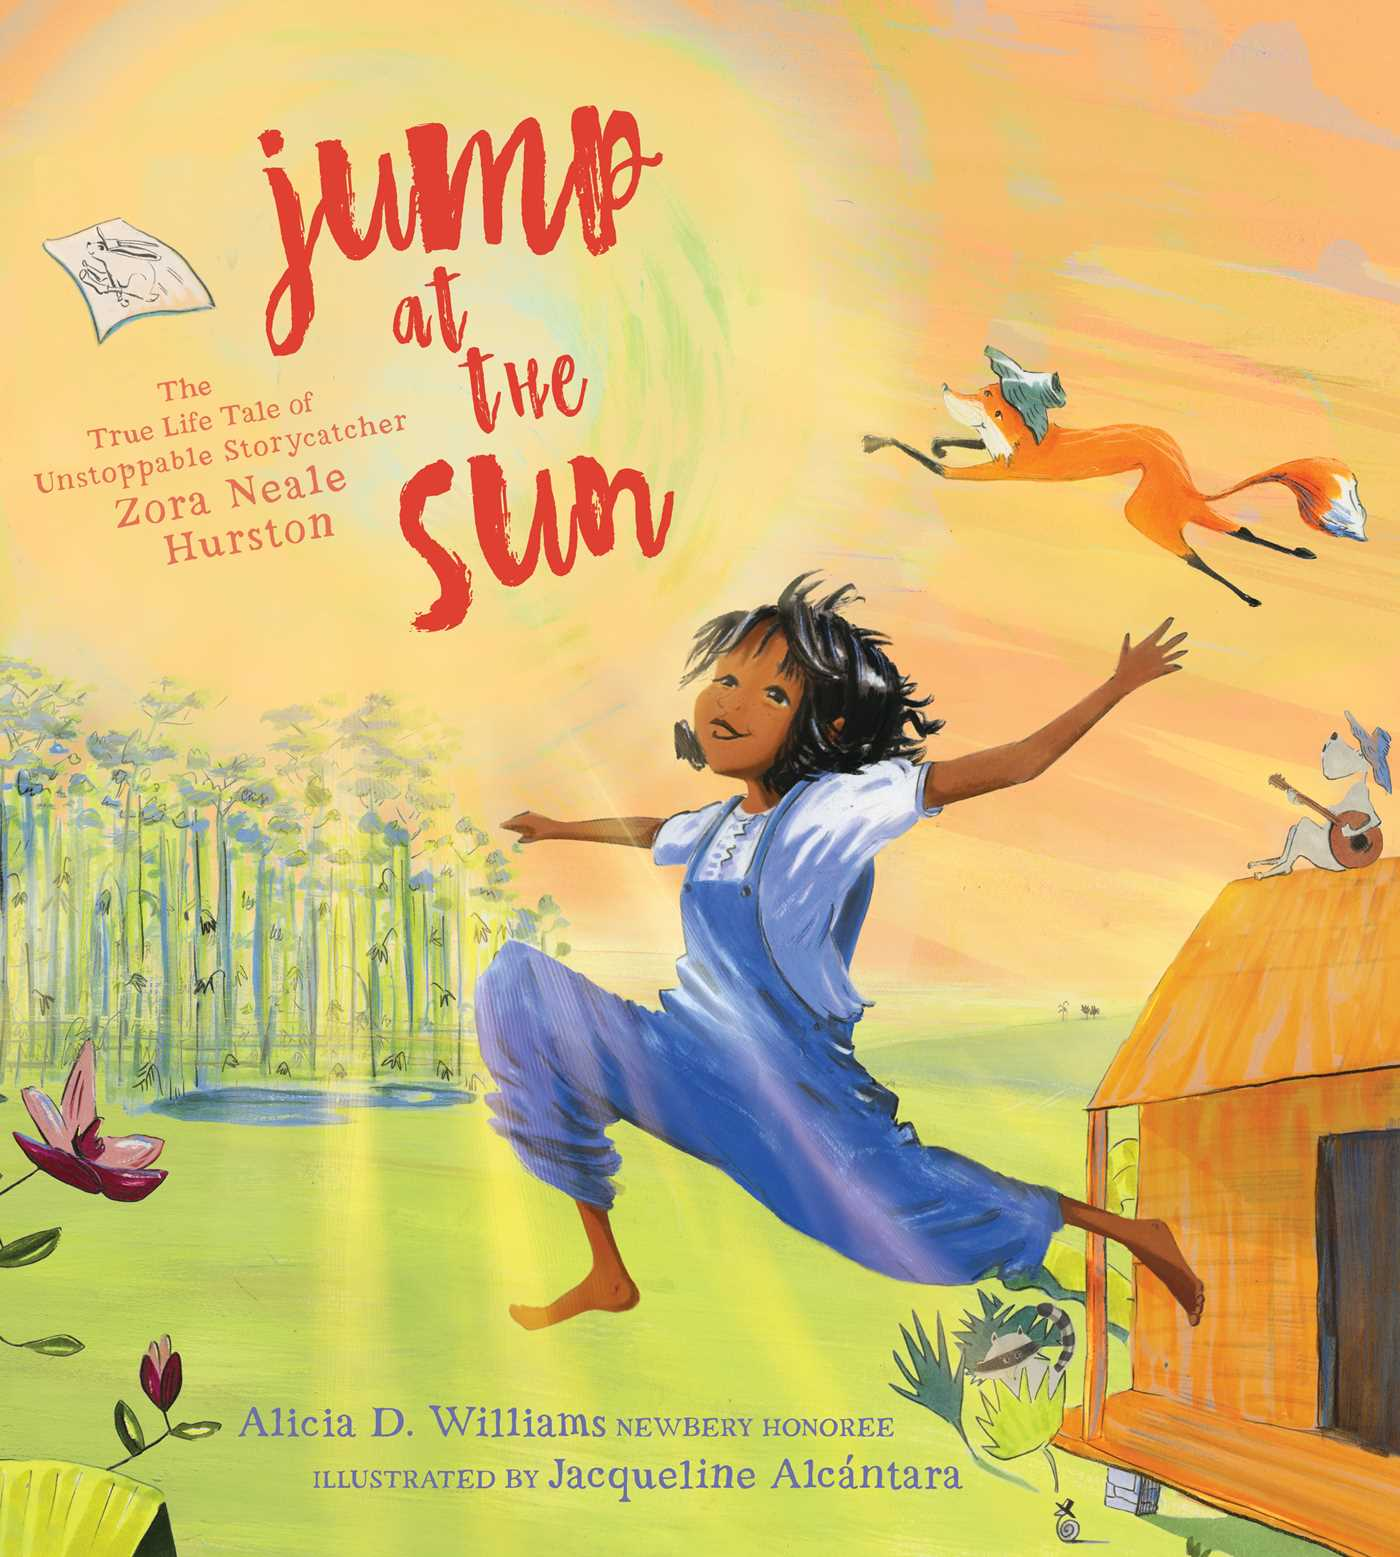 VIRTUAL: Author/Illustrator Event with Alicia D. Williams & Jacqueline Alcantara